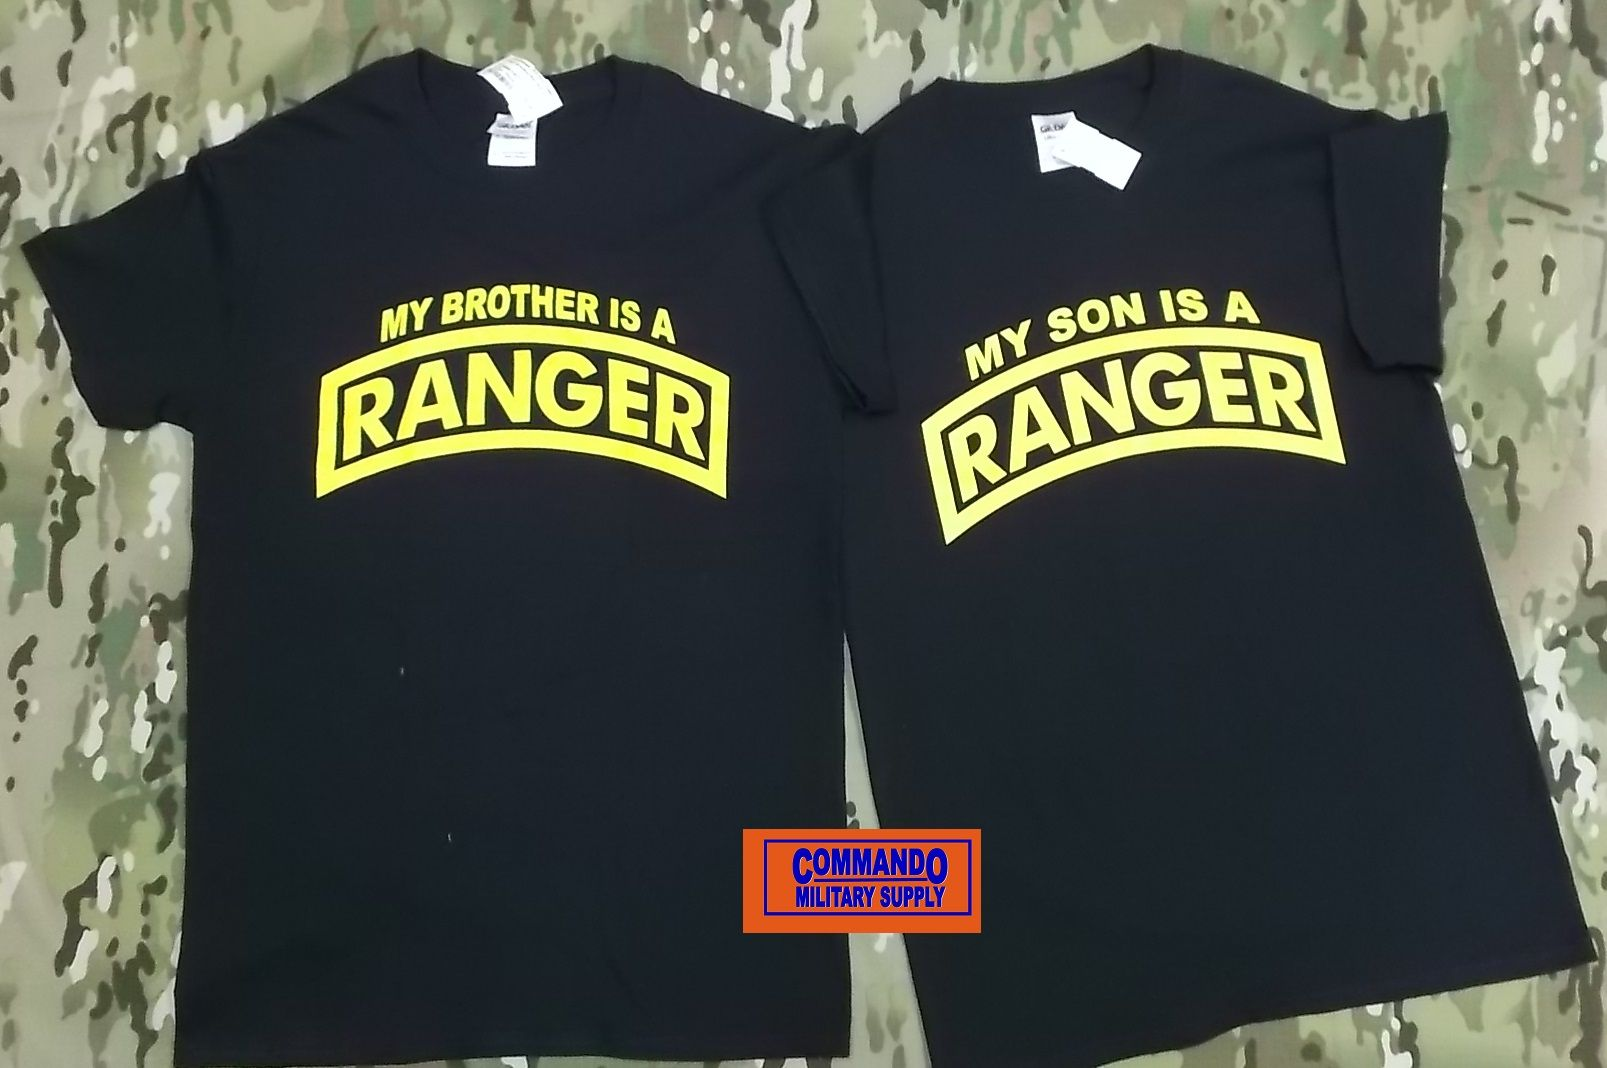 Ranger T Shirts Available At Commando Military Supply Usarmy